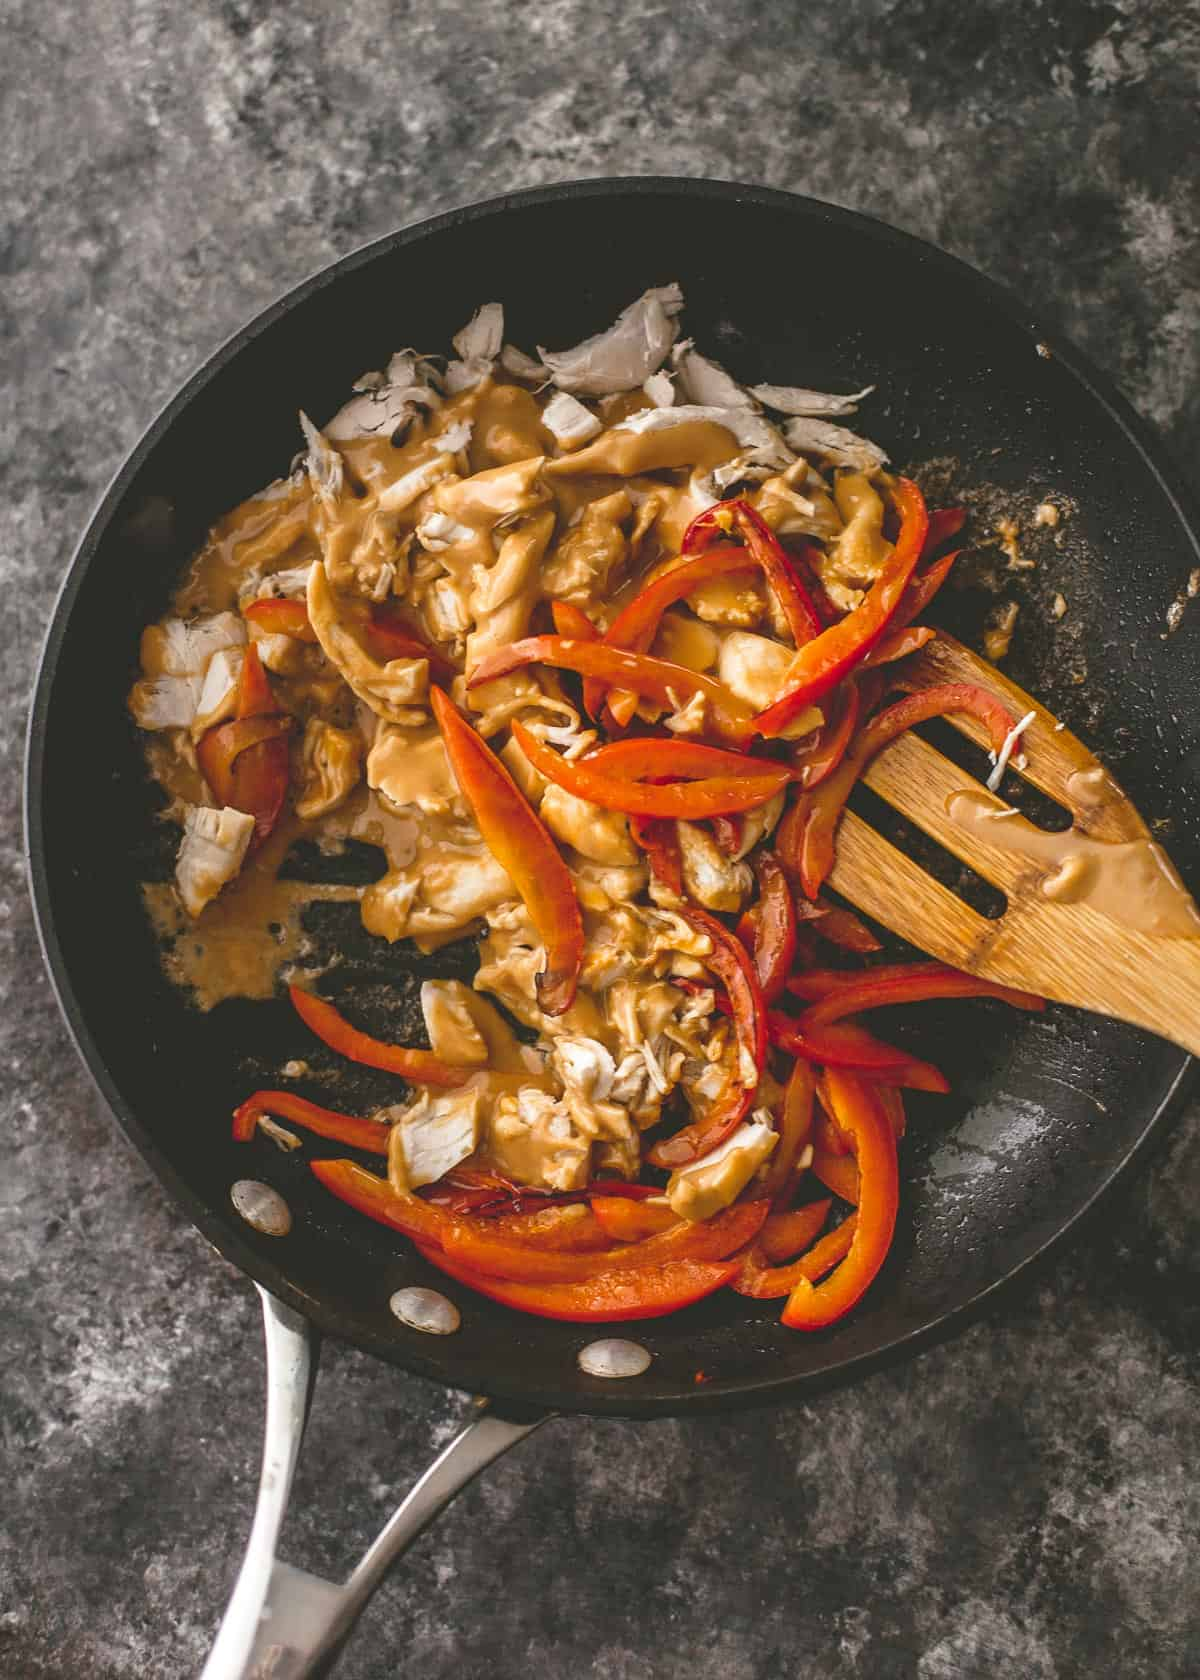 stirring peppers and chicken in a cast iron skillet